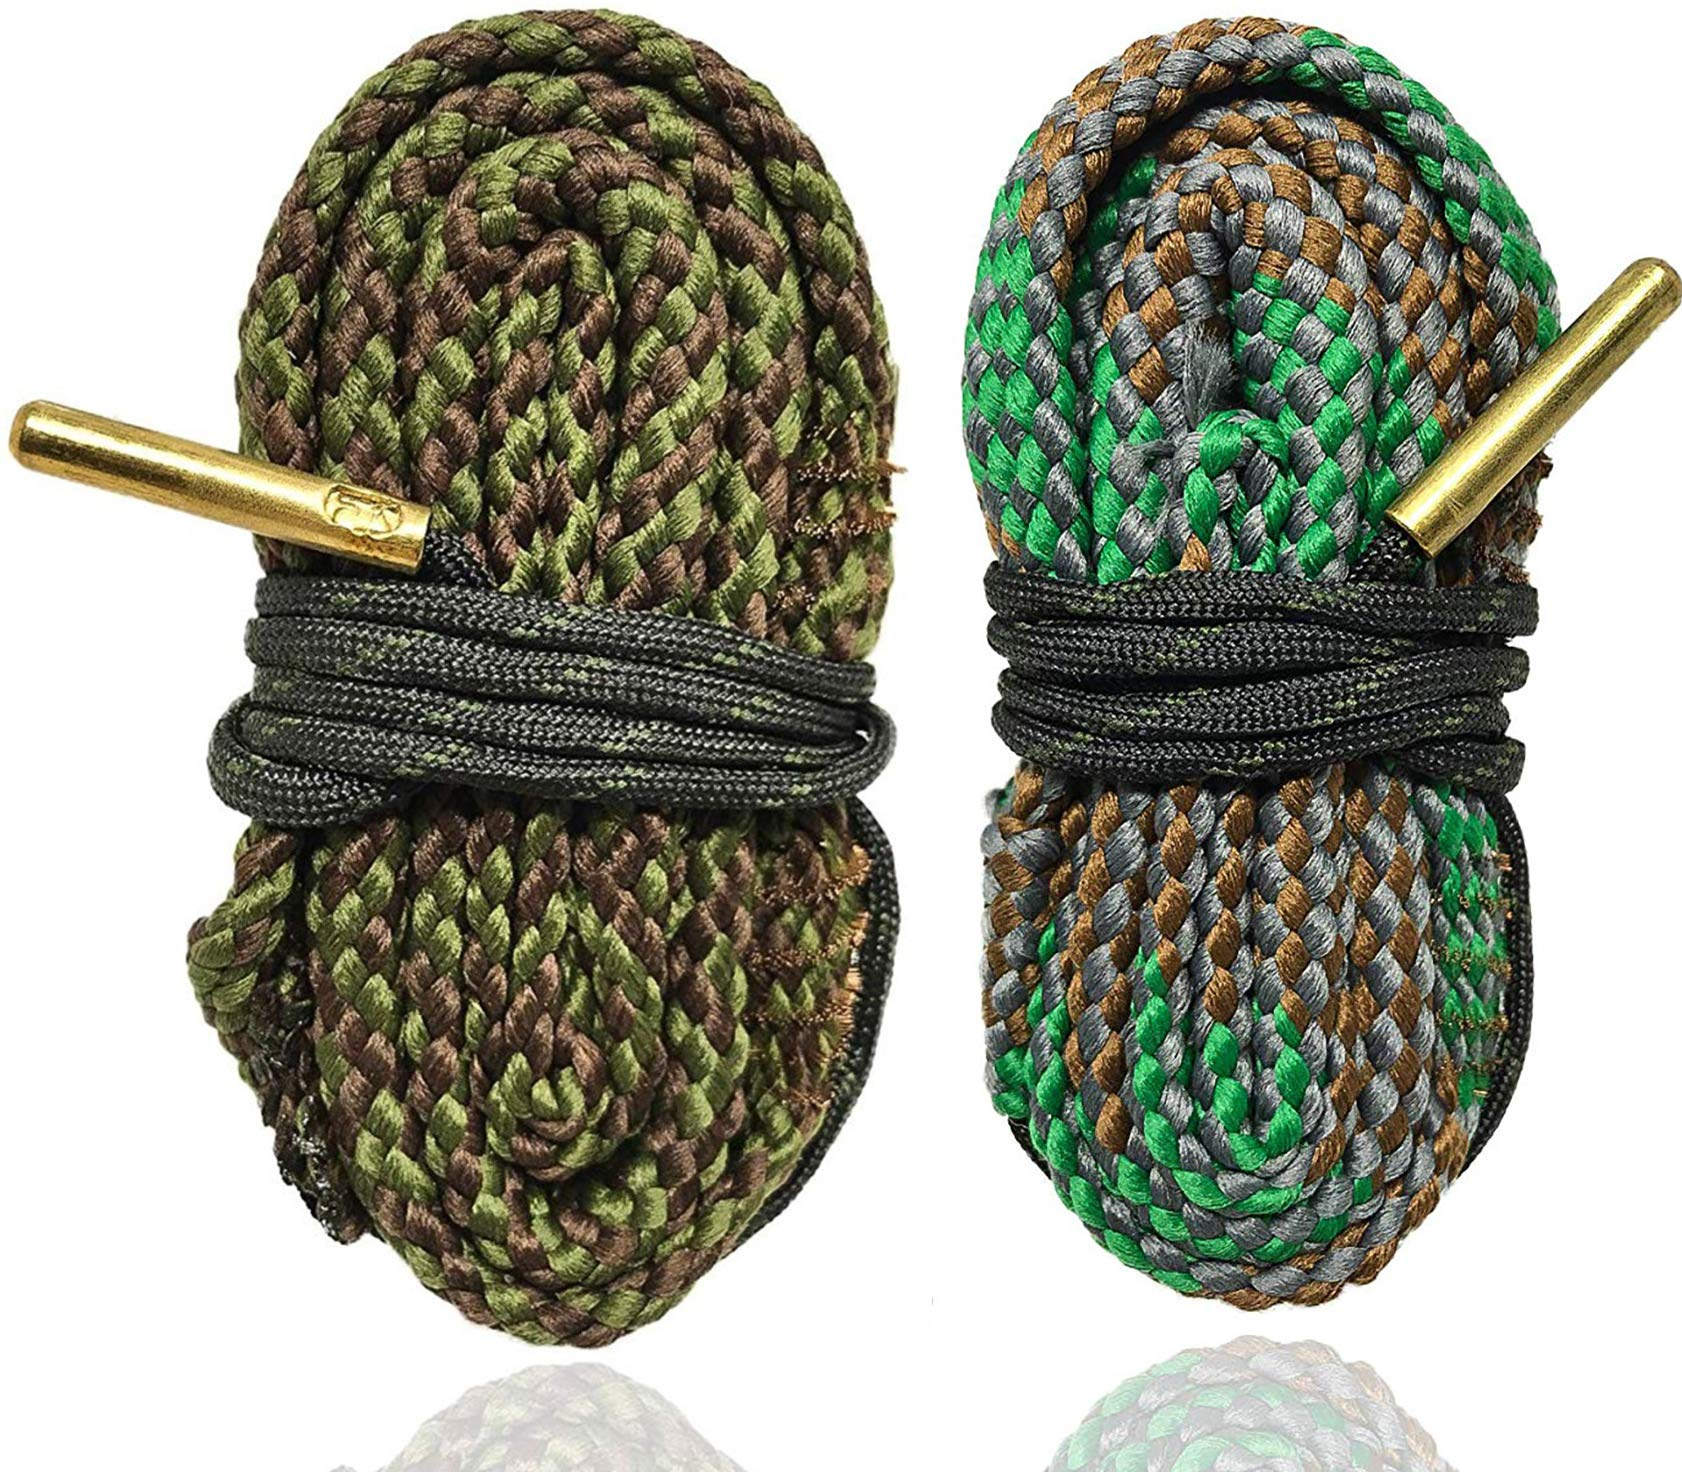 Cobra Bore Snake Combo 45 and 40 Caliber 2 Pack - Clean Your Barrel Fast and Easy Bore Snakes by Cobra